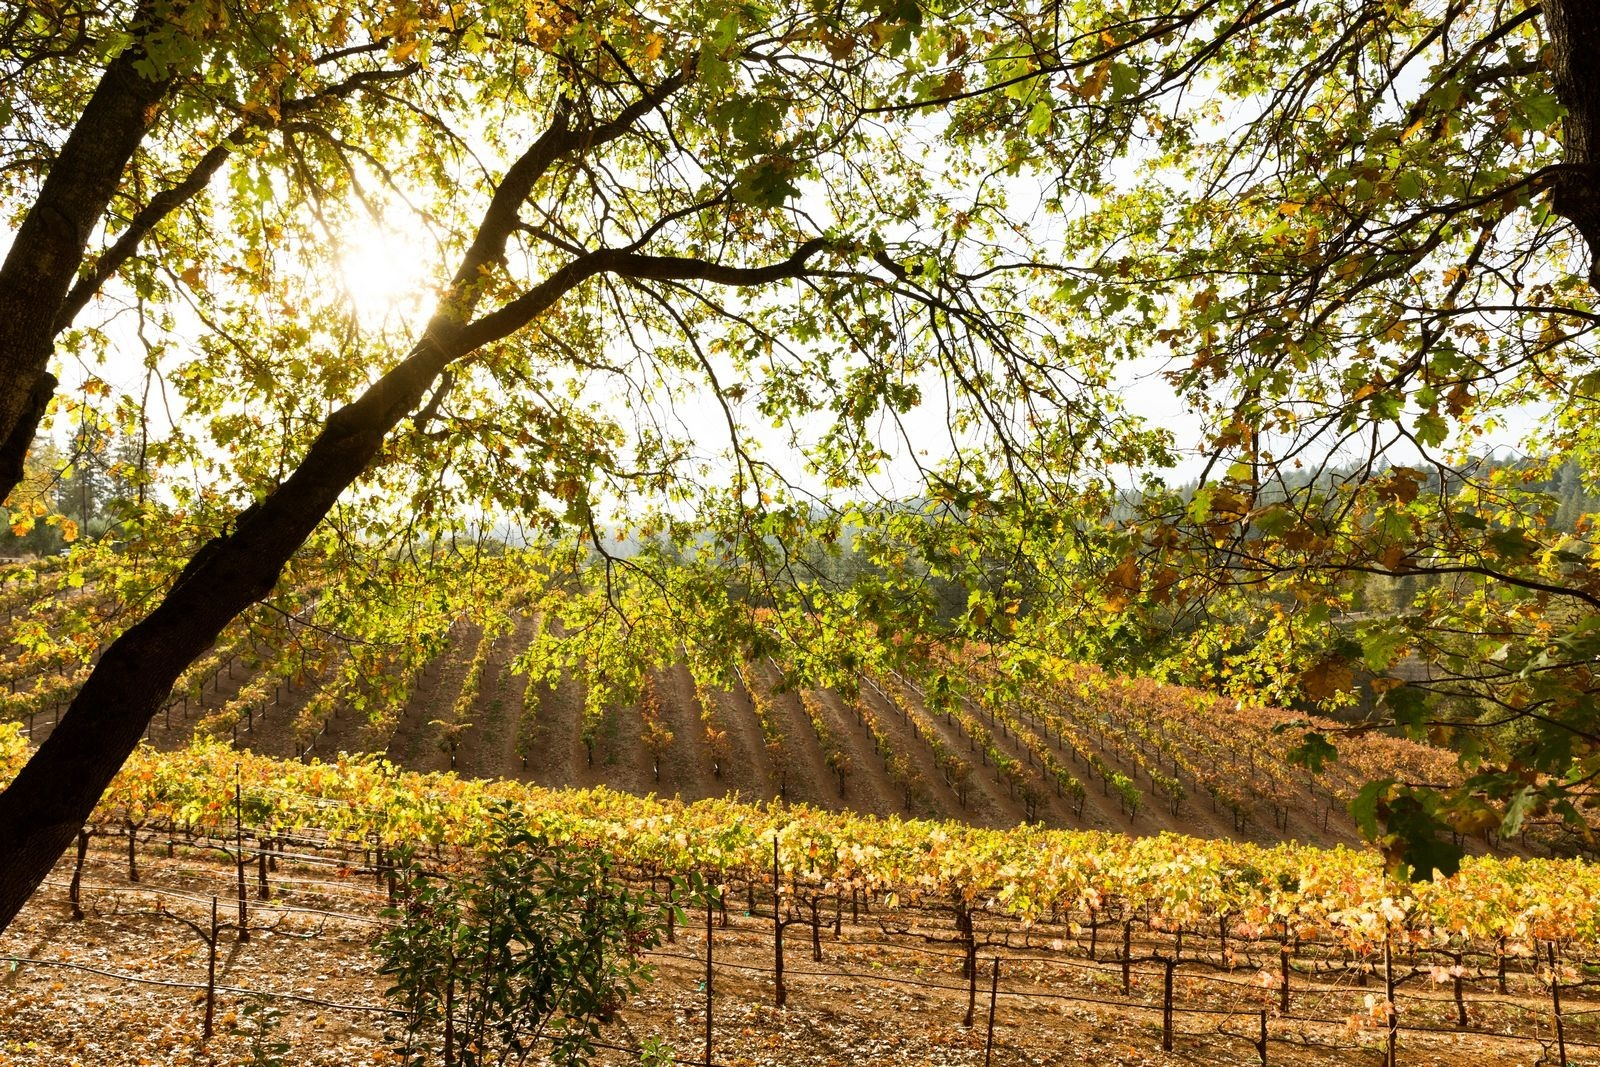 Vineyard in Gold Country, California